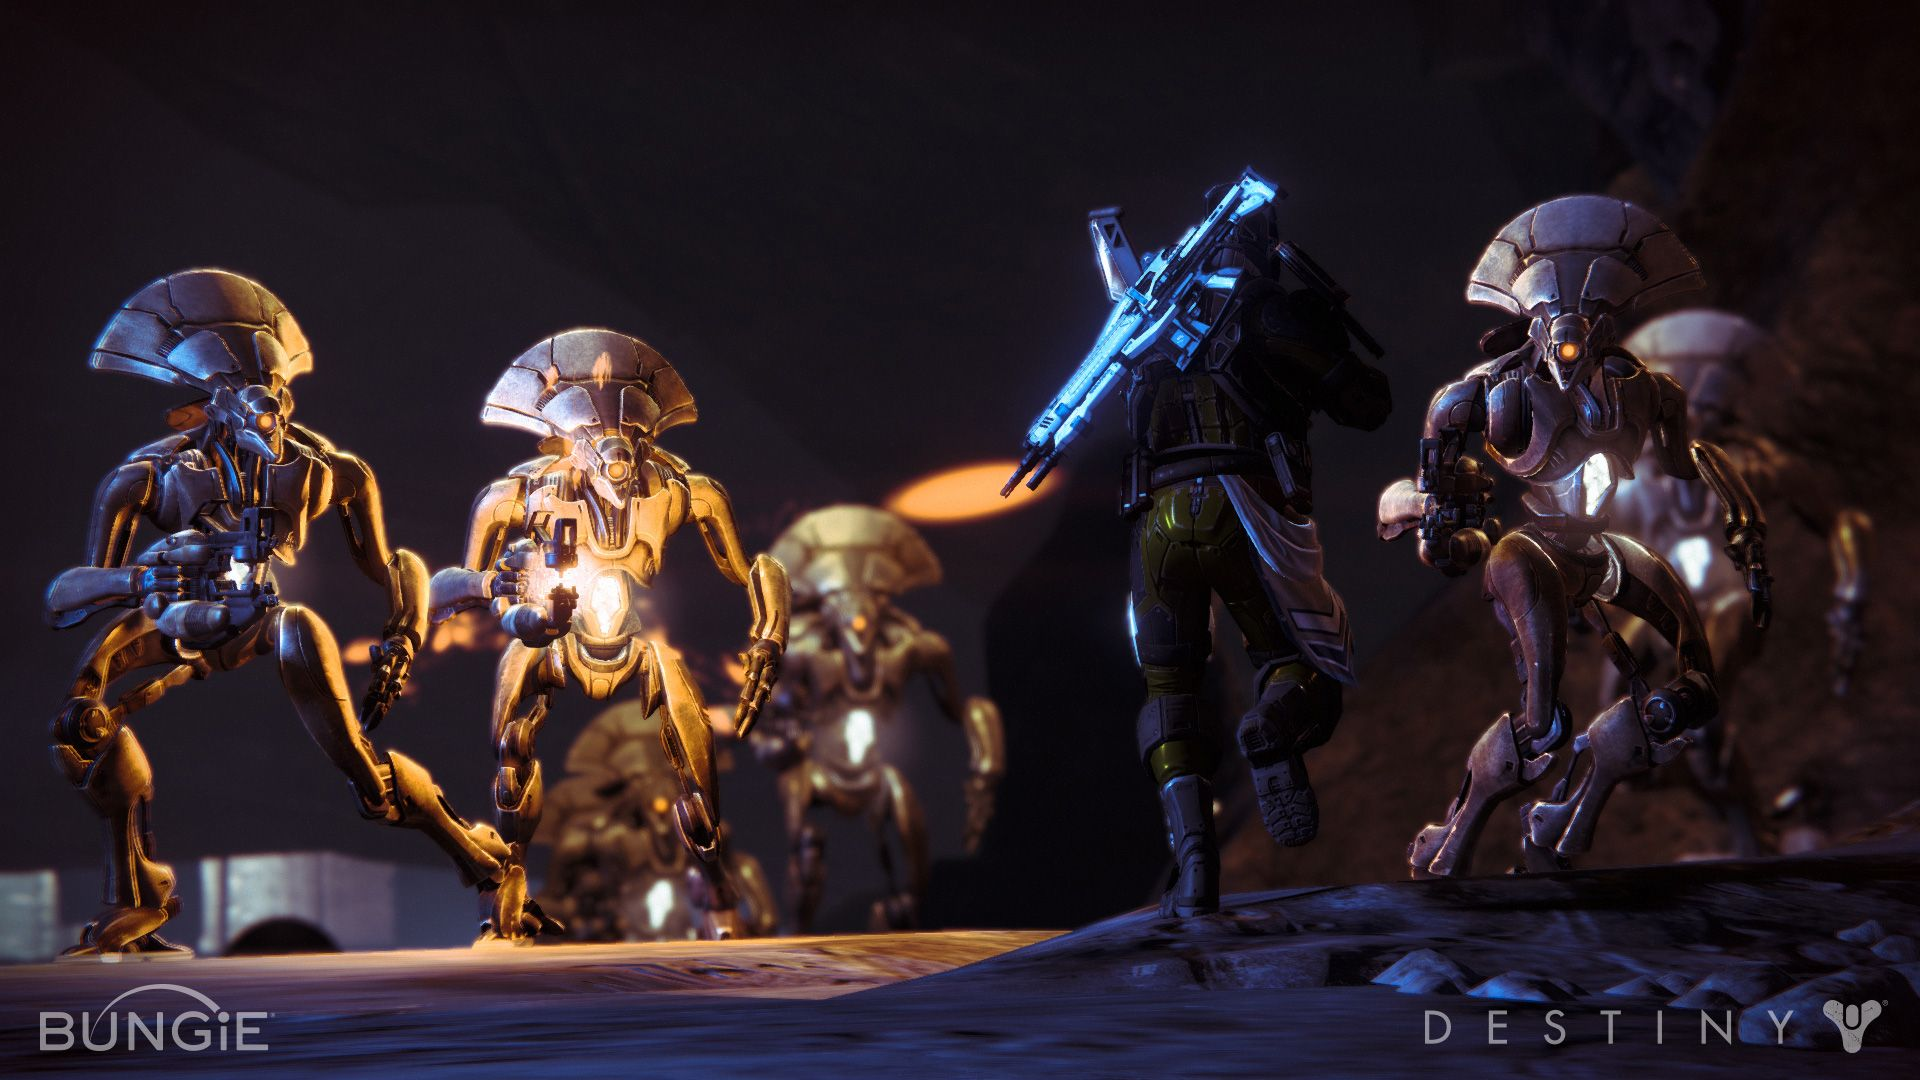 Destiny-Gets-Some-Gorgeous-New-Screenshots-418284-13